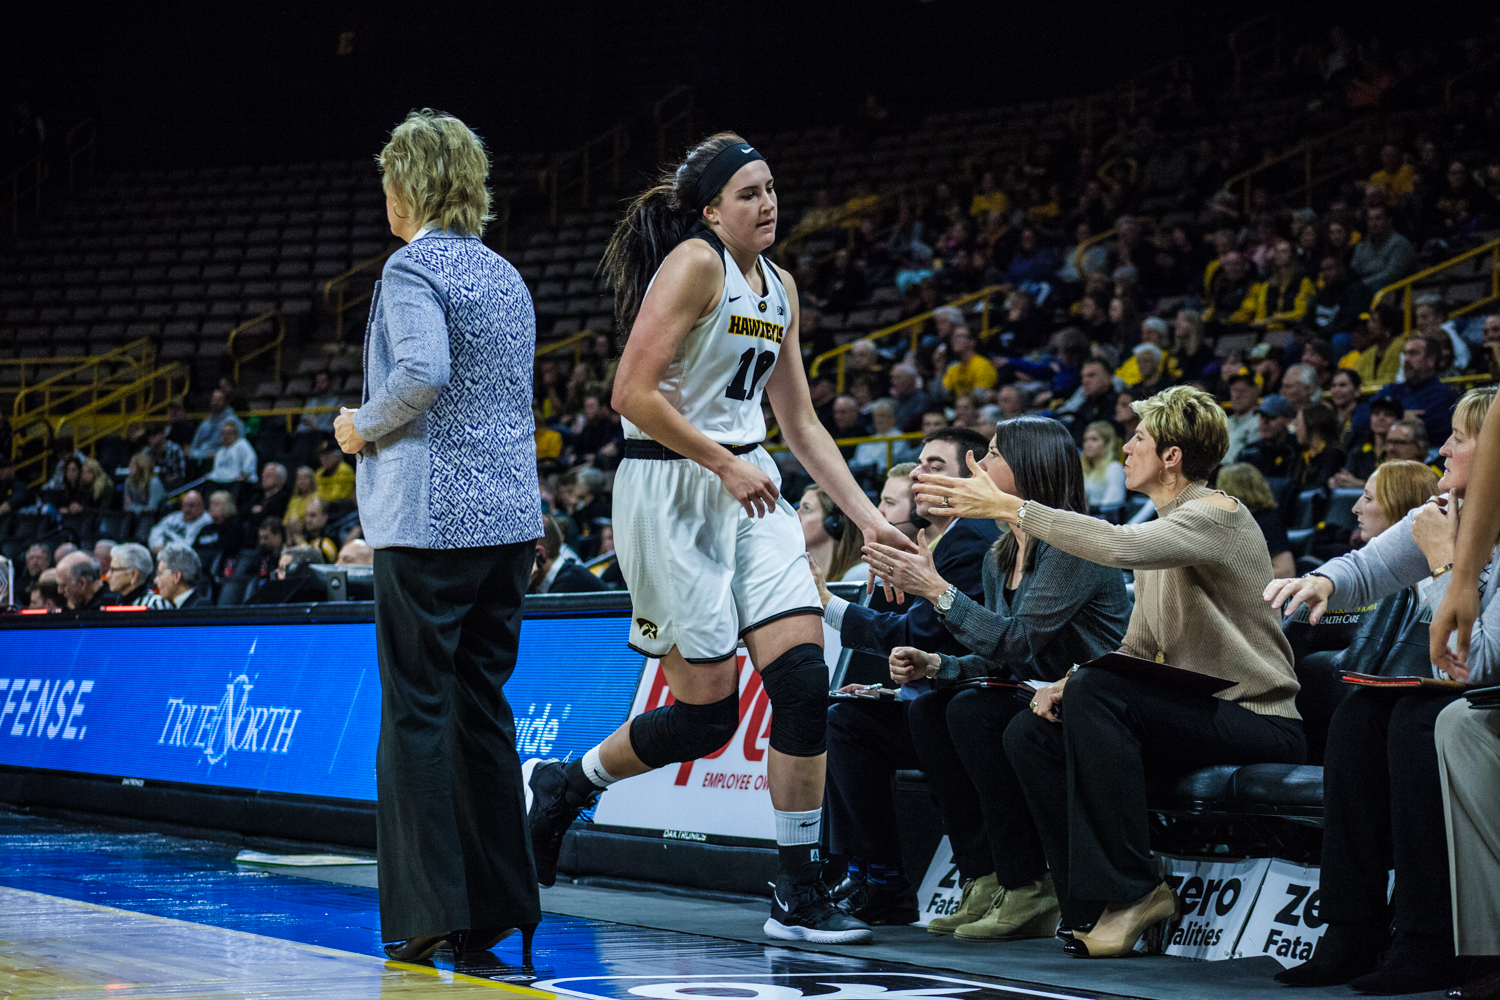 Iowa+center+Megan+Gustafson+runs+to+the+bench+during+a+women%27s+basketball+game+between+Iowa+and+North+Carolina+Central+at+Carver-Hawkeye+Arena+on+Saturday%2C+Nov.+17%2C+2018.+The+Hawkeyes+devastated+the+visiting+Eagles%2C+106-39.+